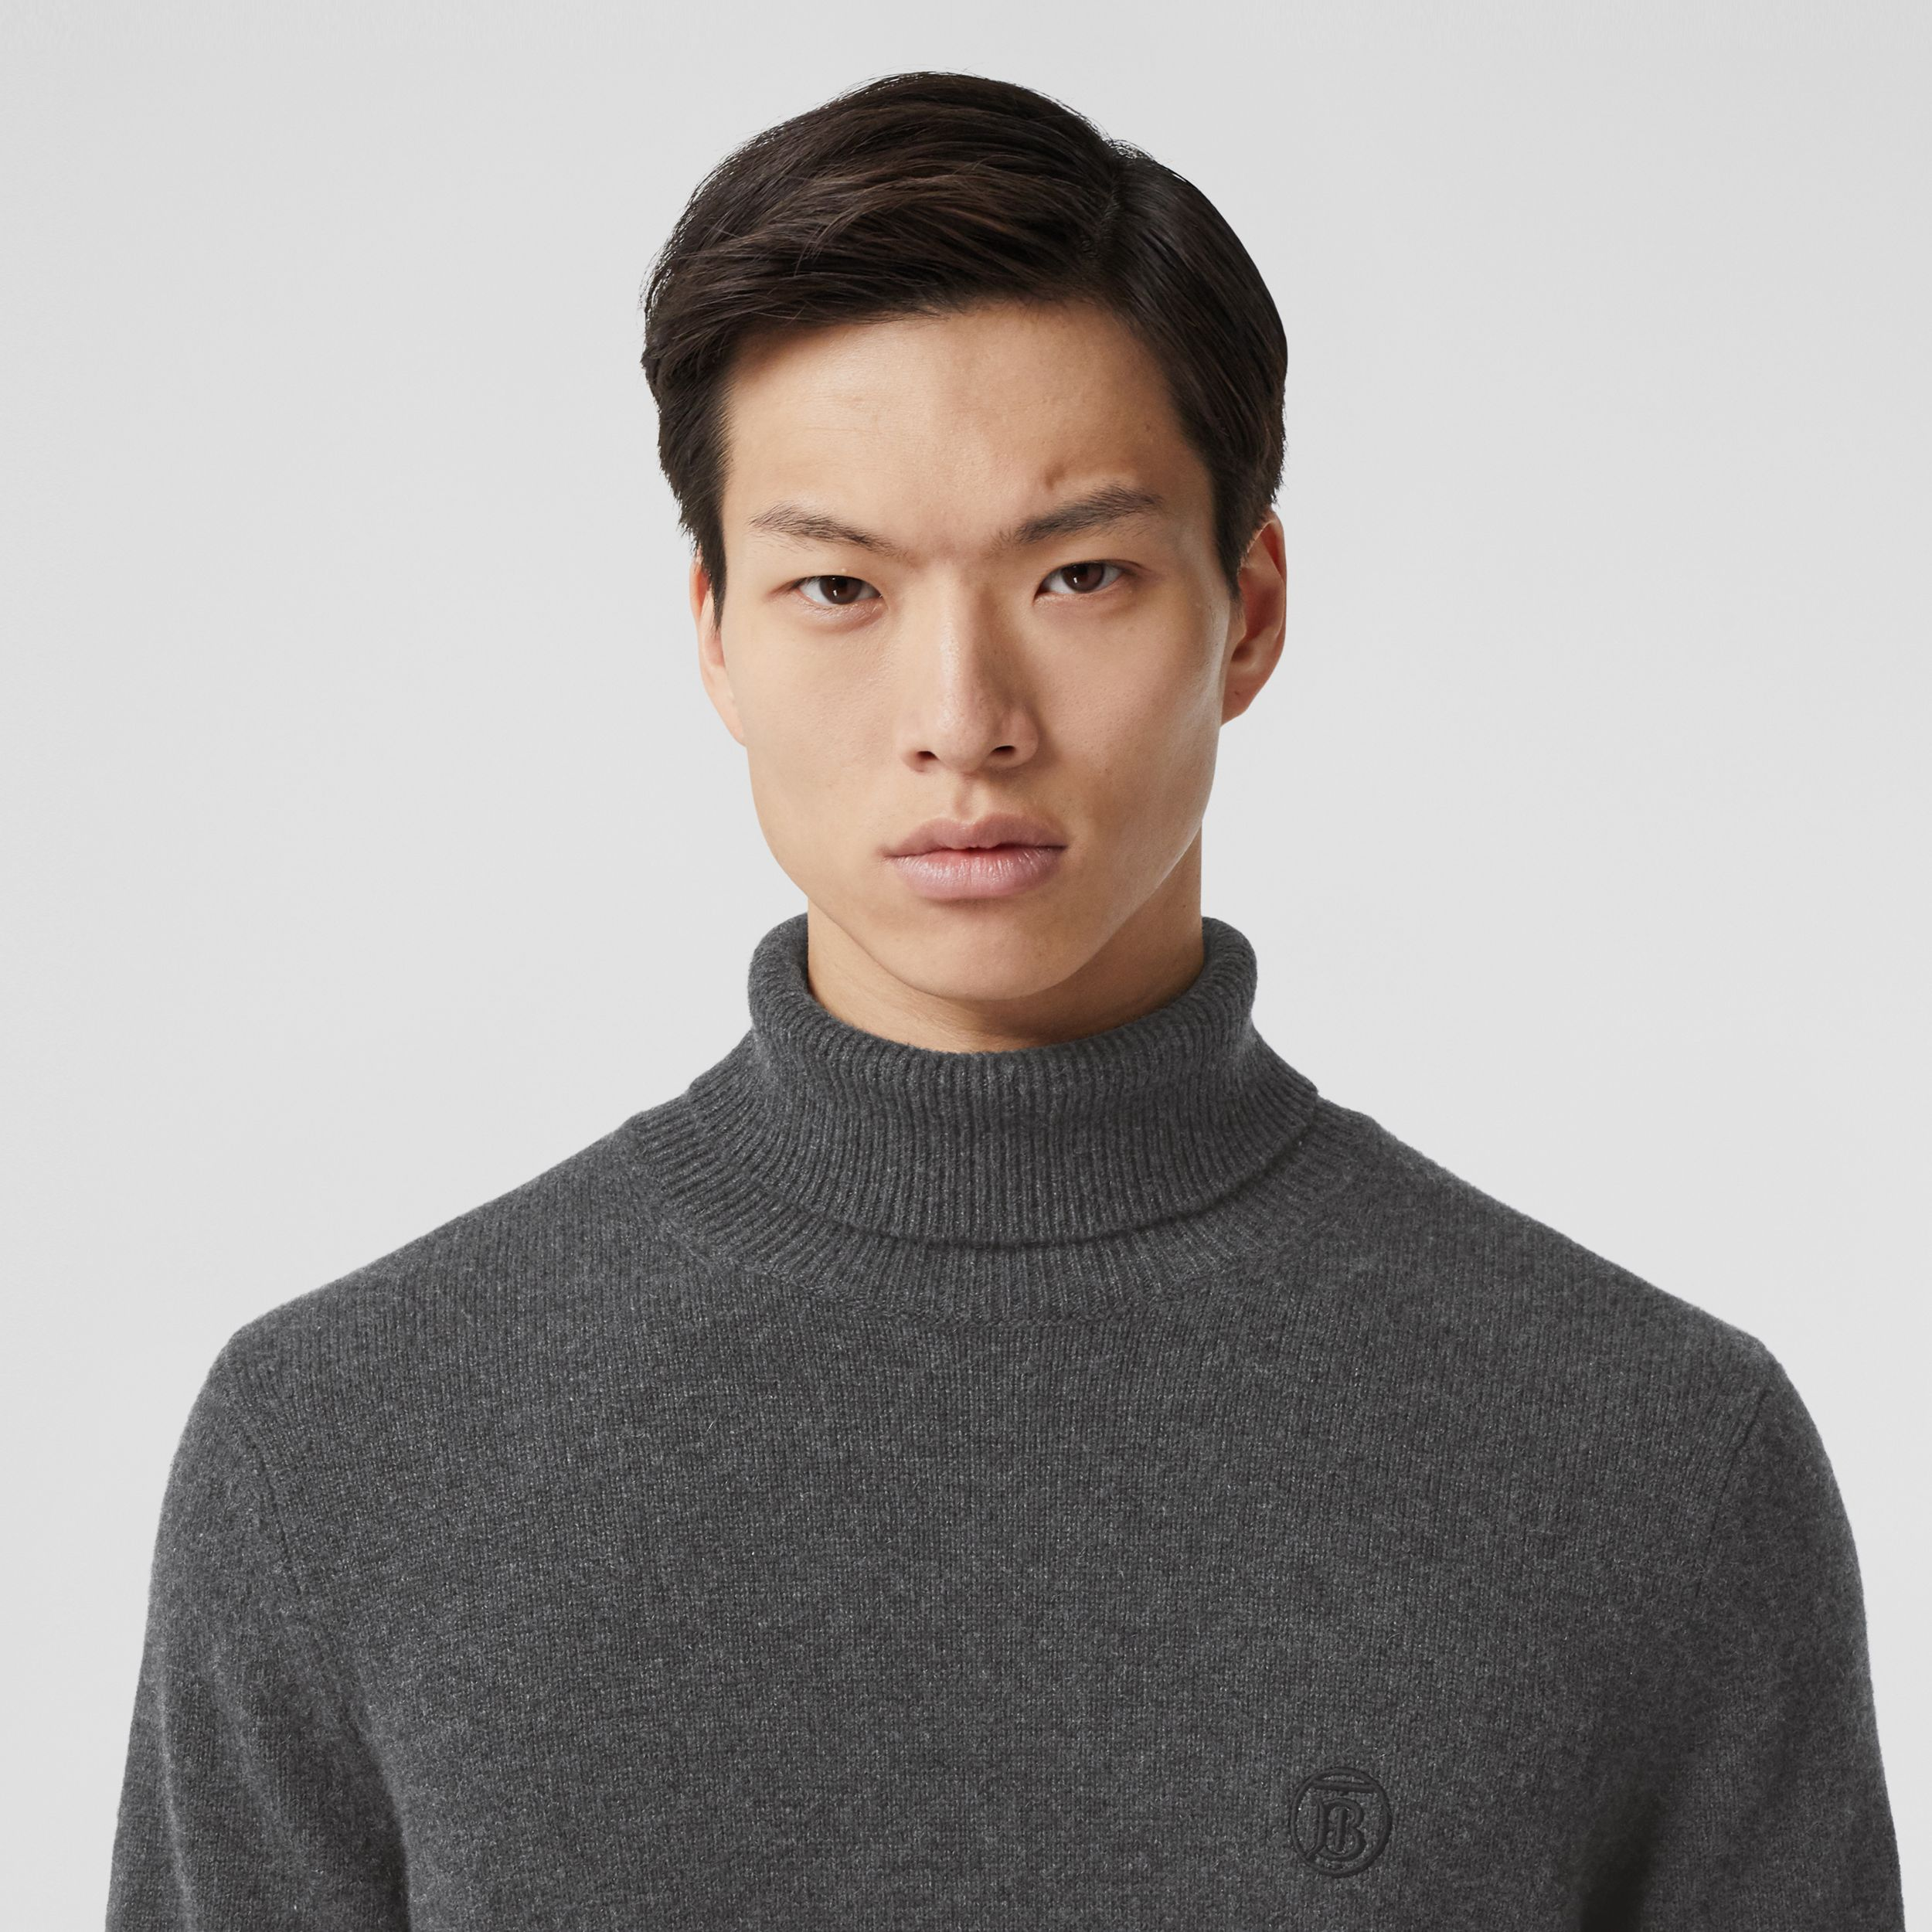 Monogram Motif Cashmere Roll-neck Sweater in Charcoal - Men | Burberry Australia - 2